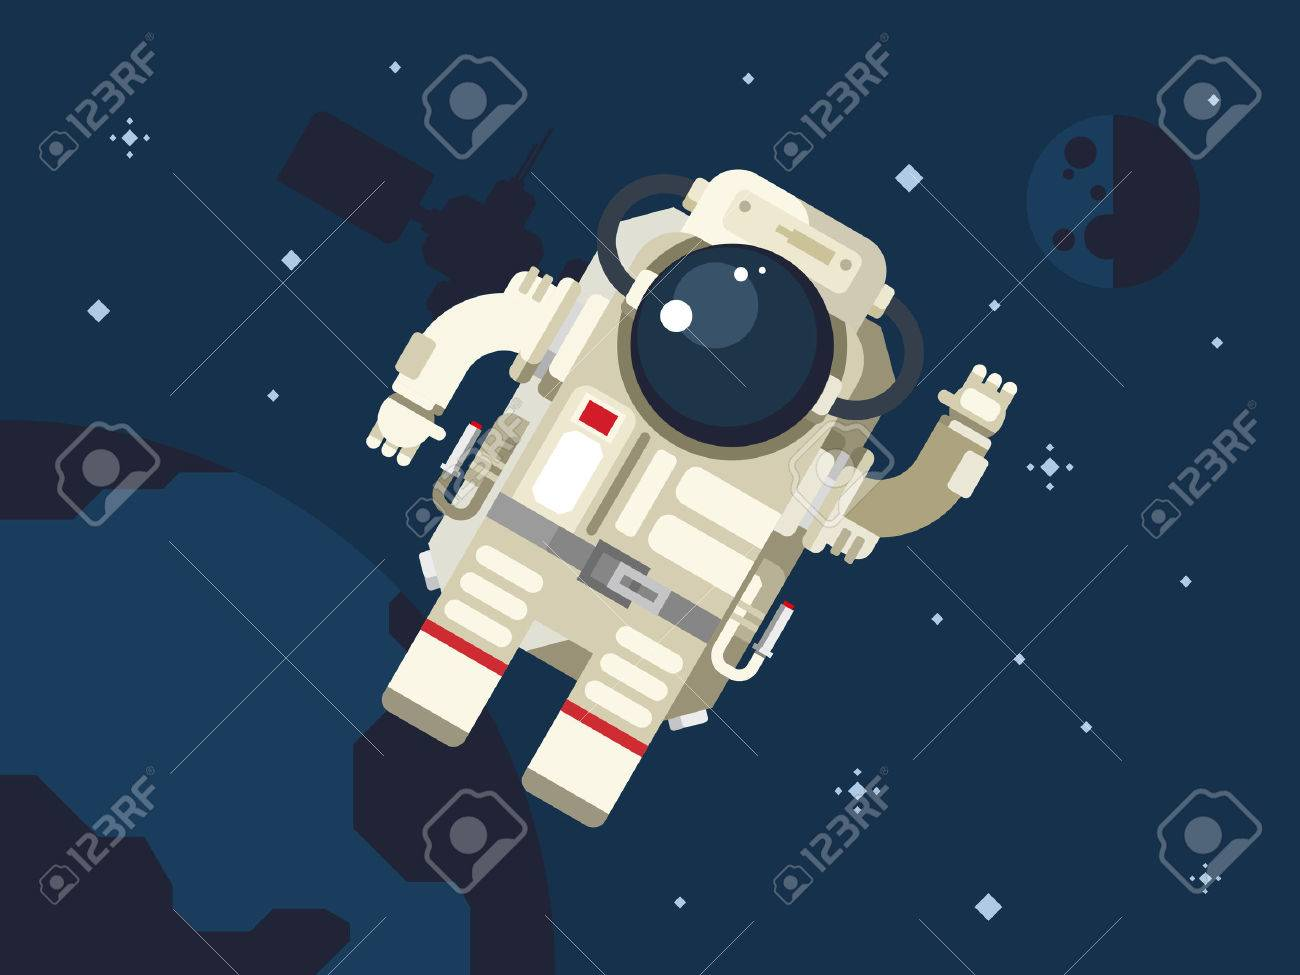 Astronaut in outer space concept vector illustration in flat style. - 42554162